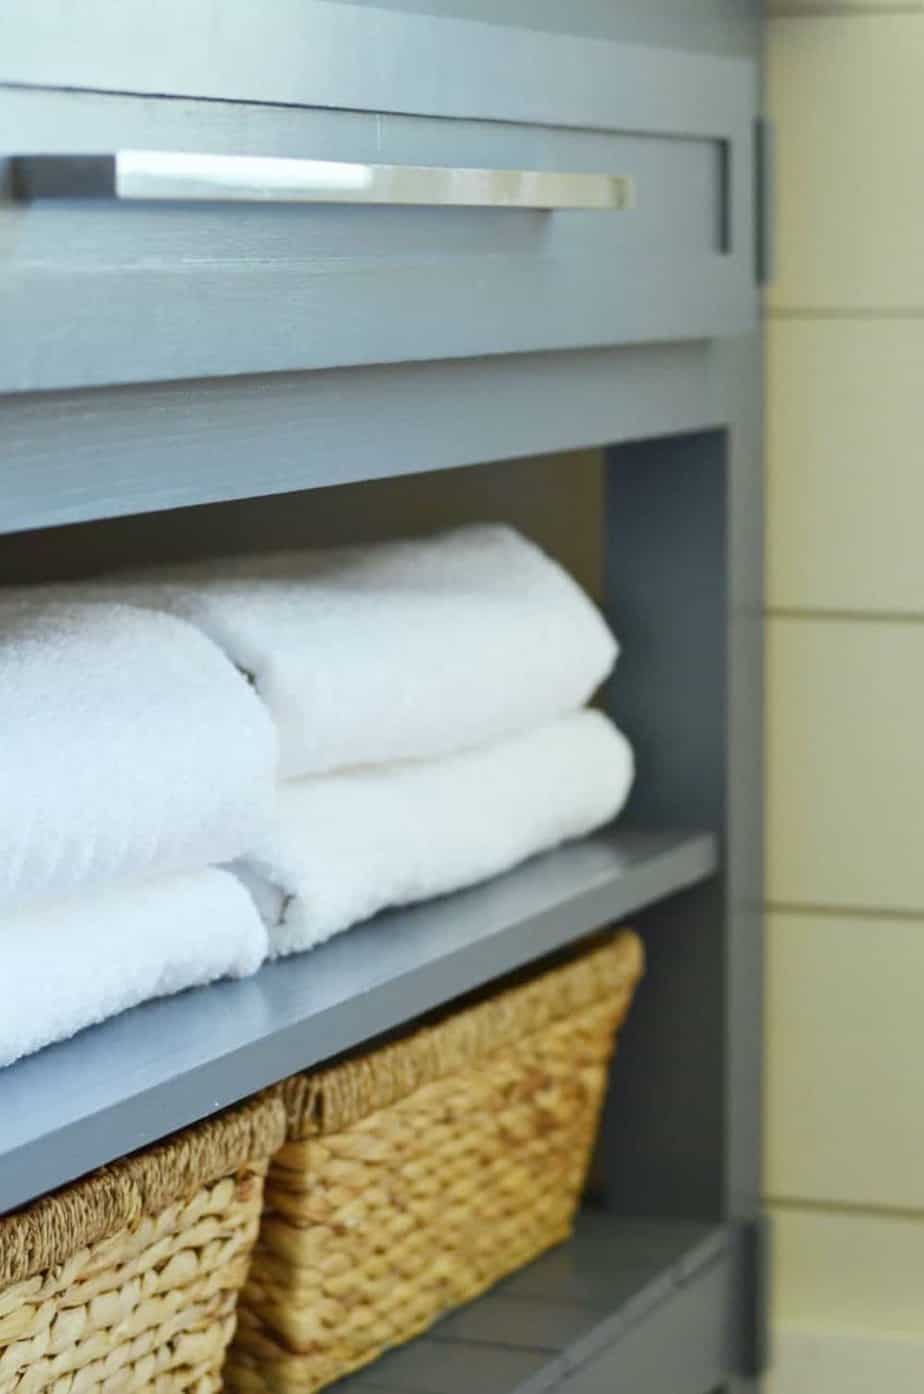 under the sink basket and bathroom towel storage